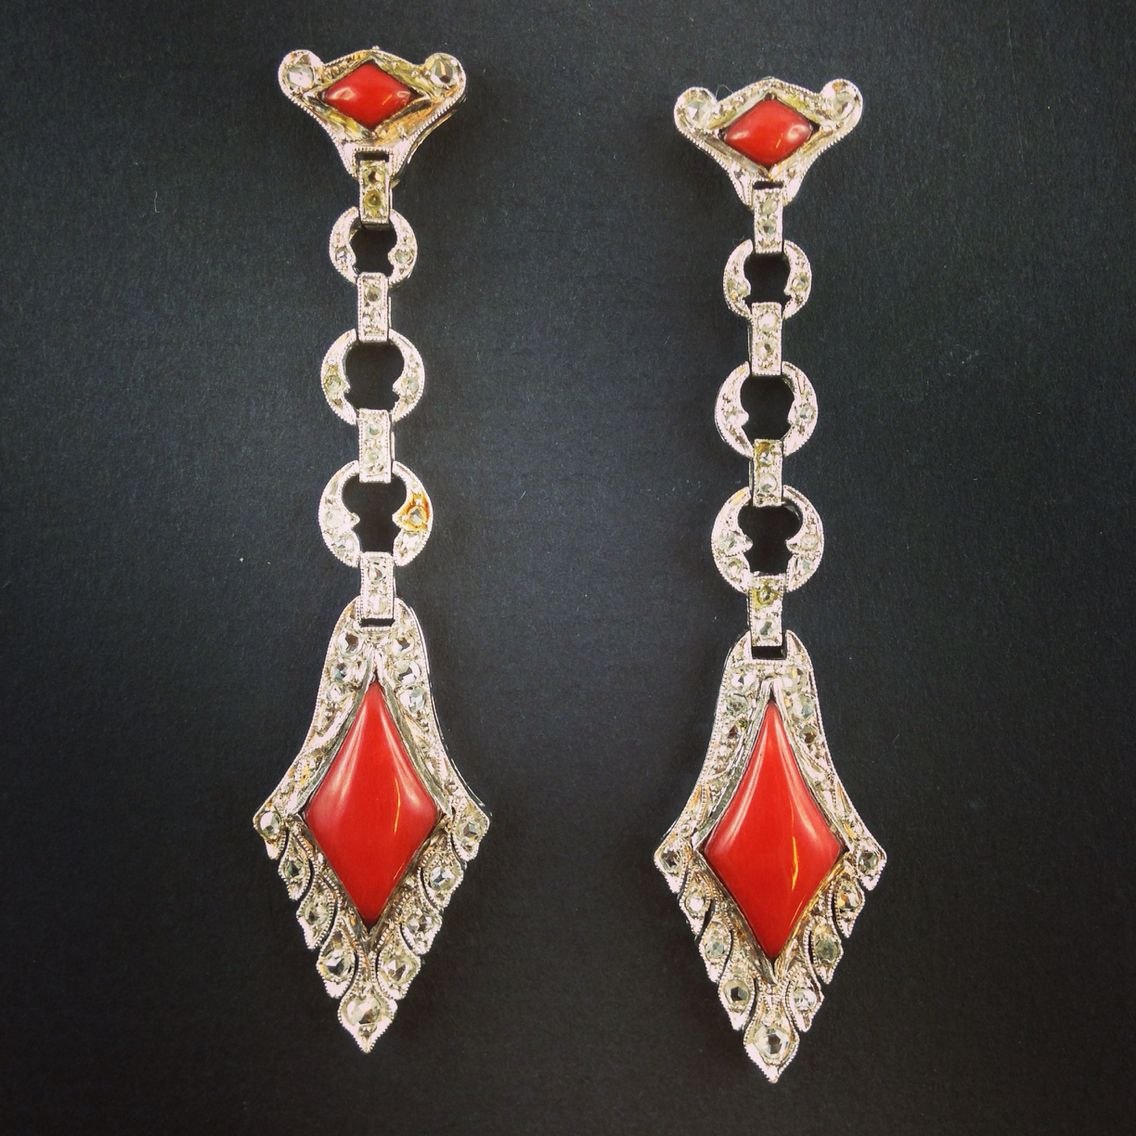 An Art Deco platinum, Diamond and coral earrings. Pennisi Milano